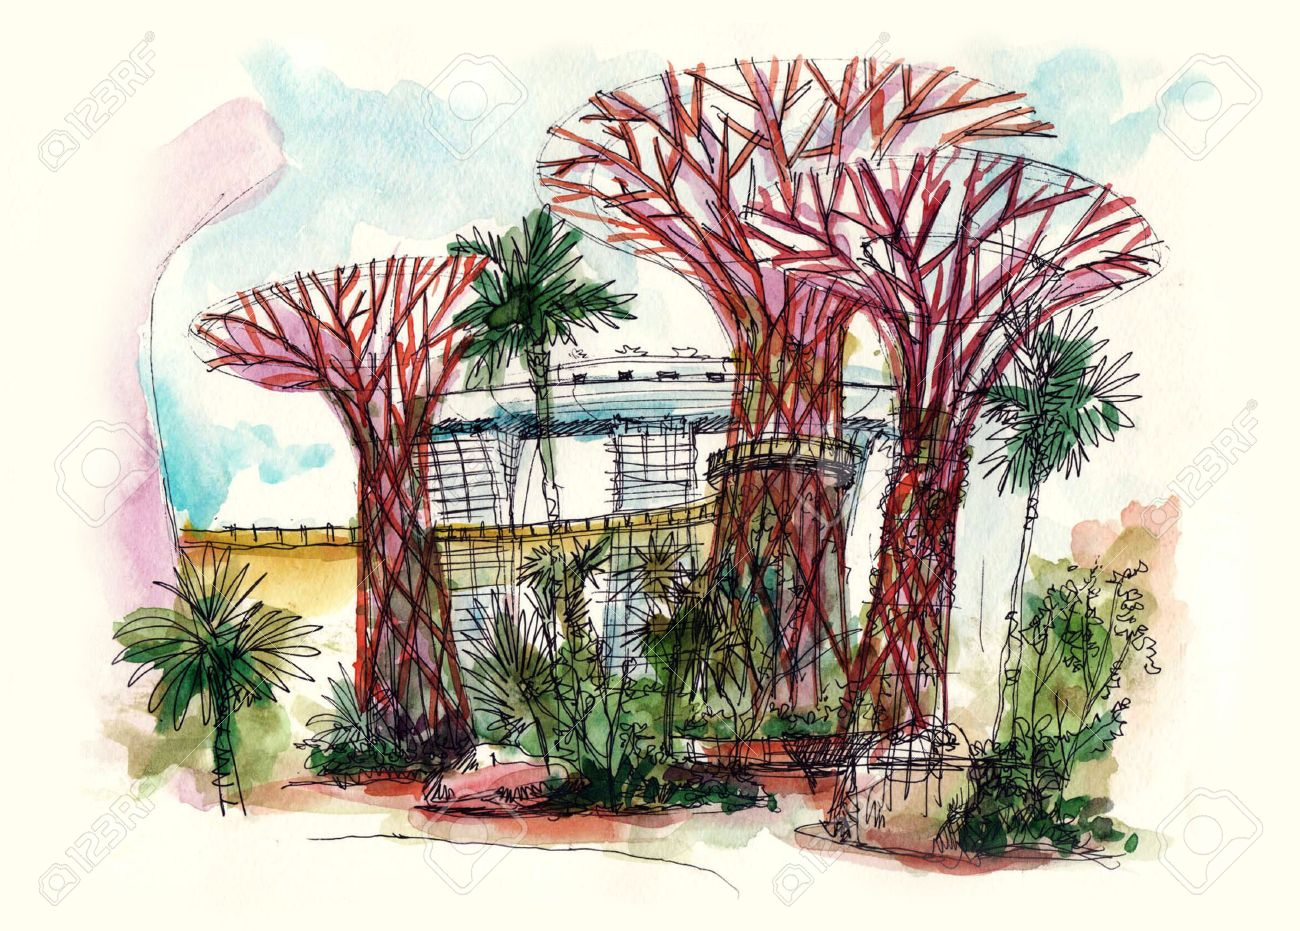 garden by the bay super trees at singapore painting - 48045628